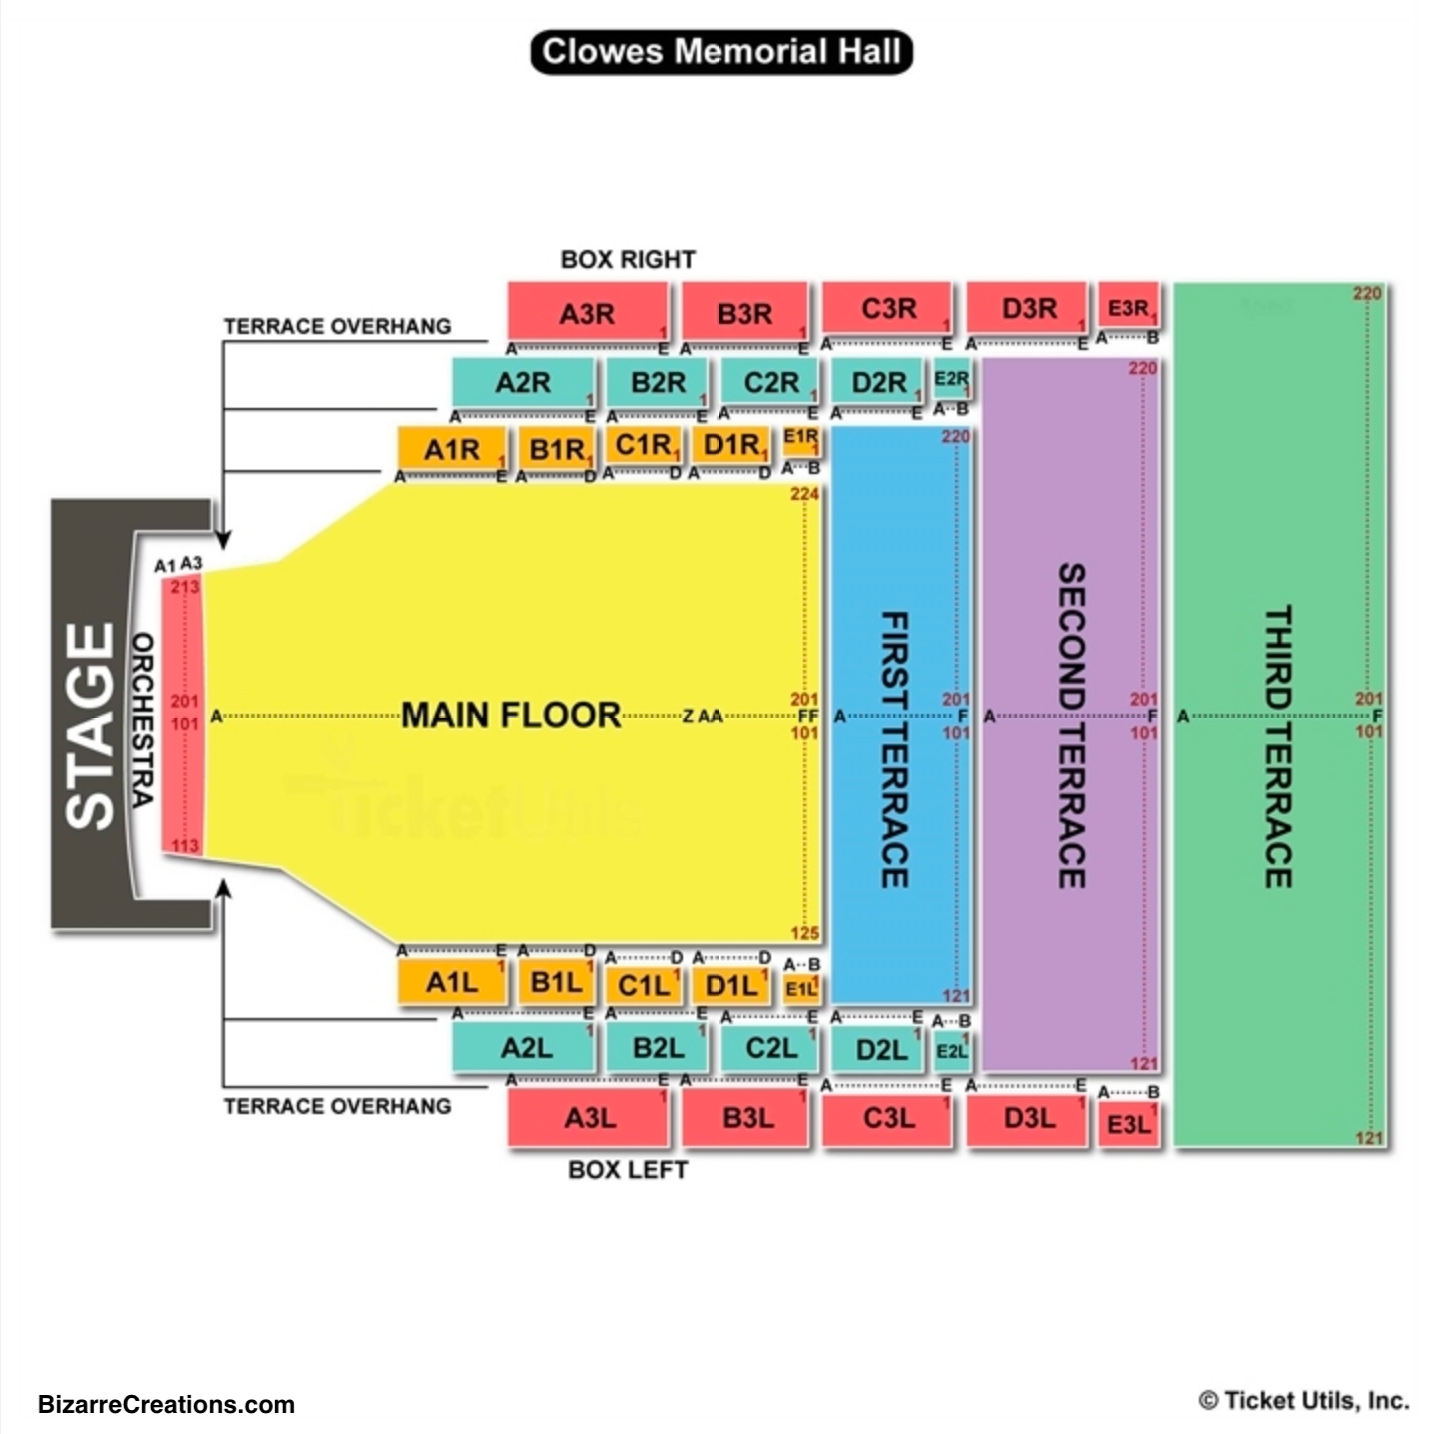 Clowes memorial hall seating chart seating charts tickets